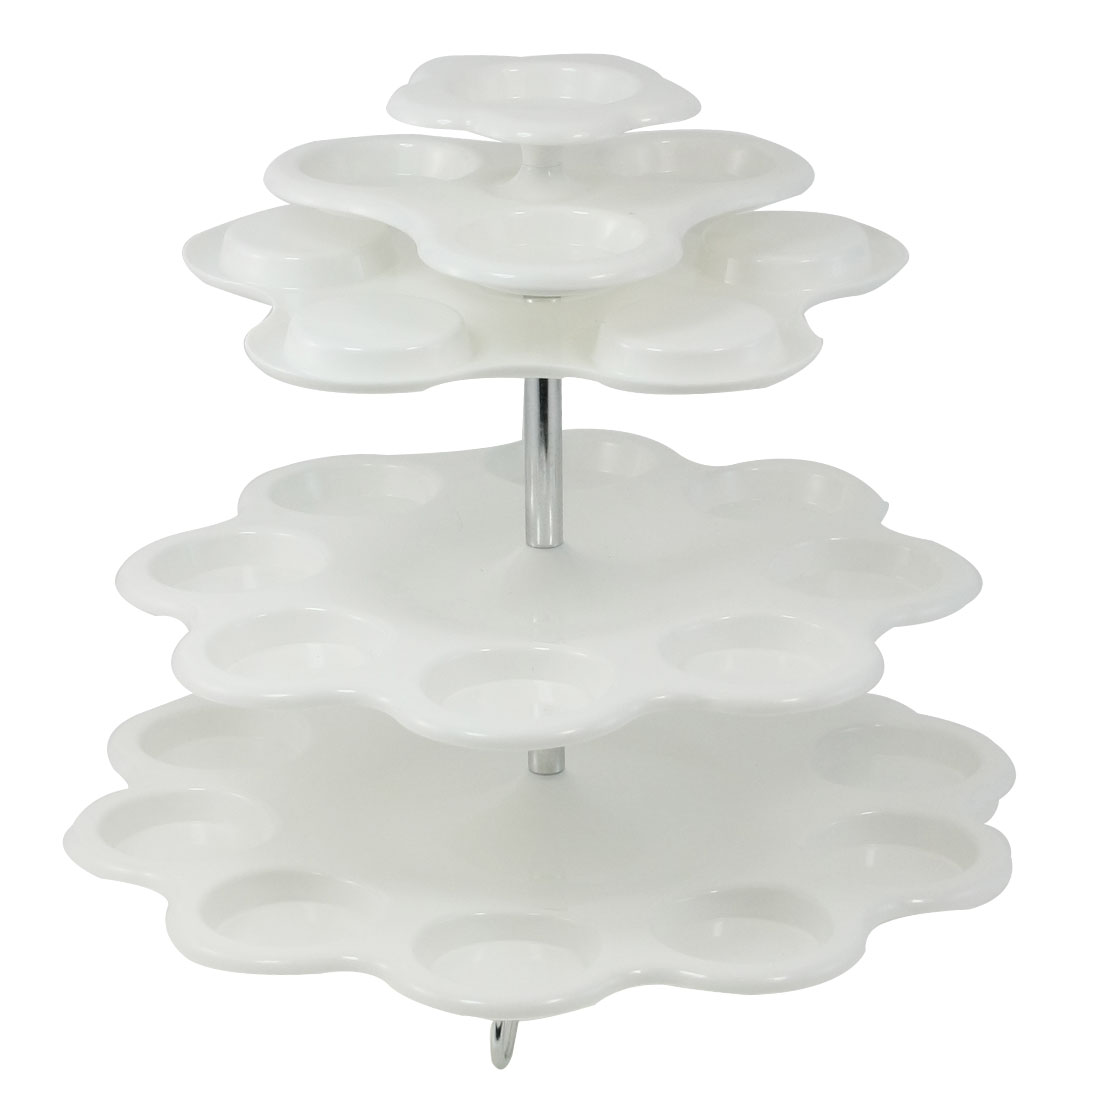 Wedding Babyshower 27 Cakes 3 Tier Round Cupcake Stand Tree White